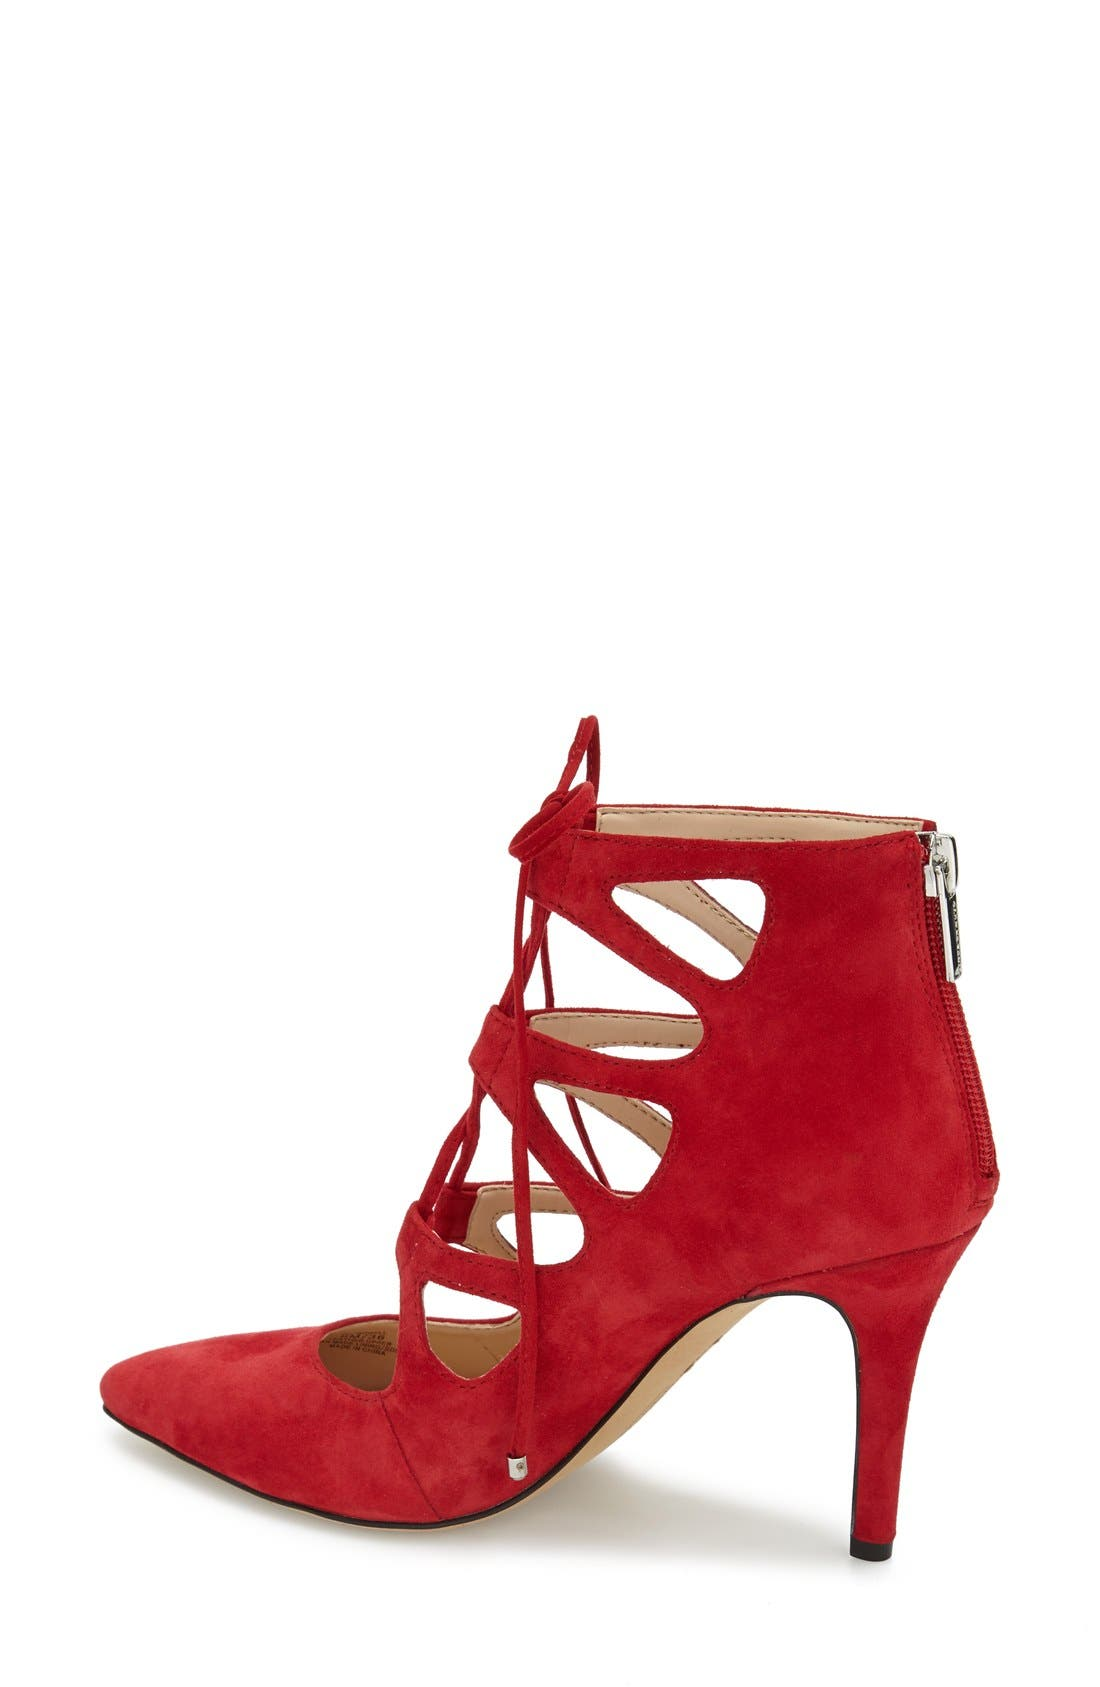 'Bodell' Lace Up Pump,                             Alternate thumbnail 15, color,